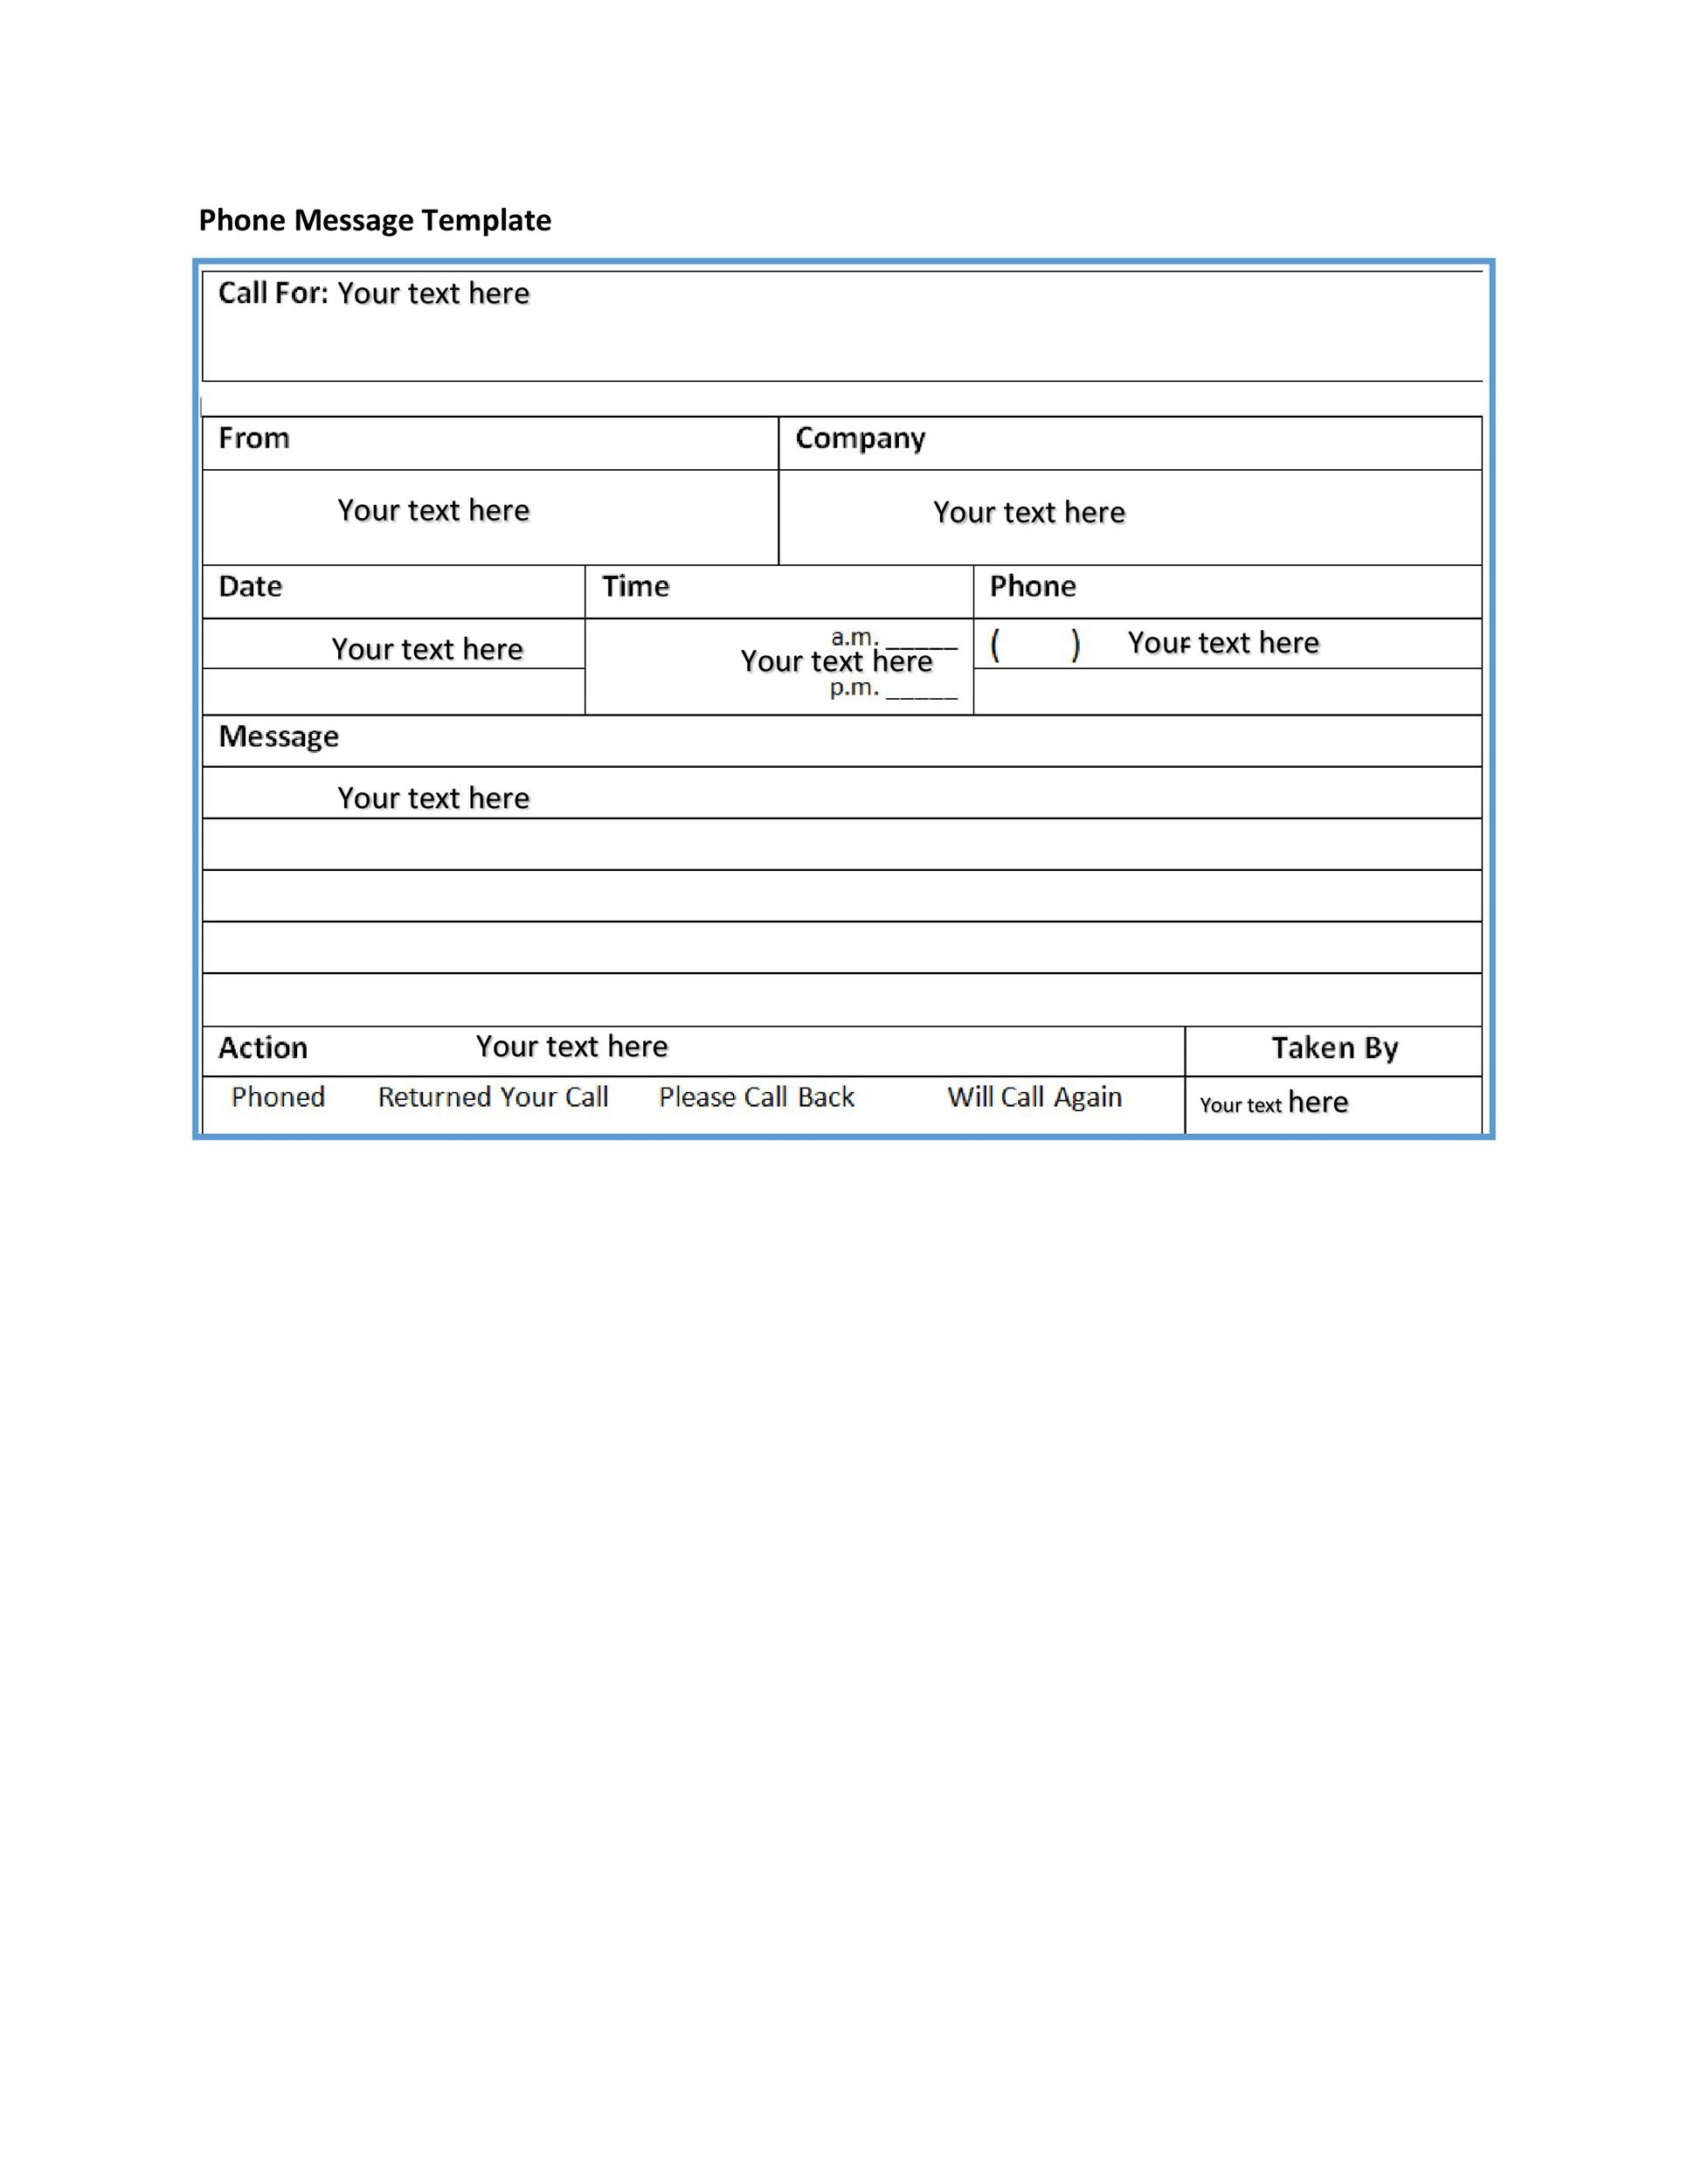 Voicemail Greetings  Phone Message Templates Business Funny